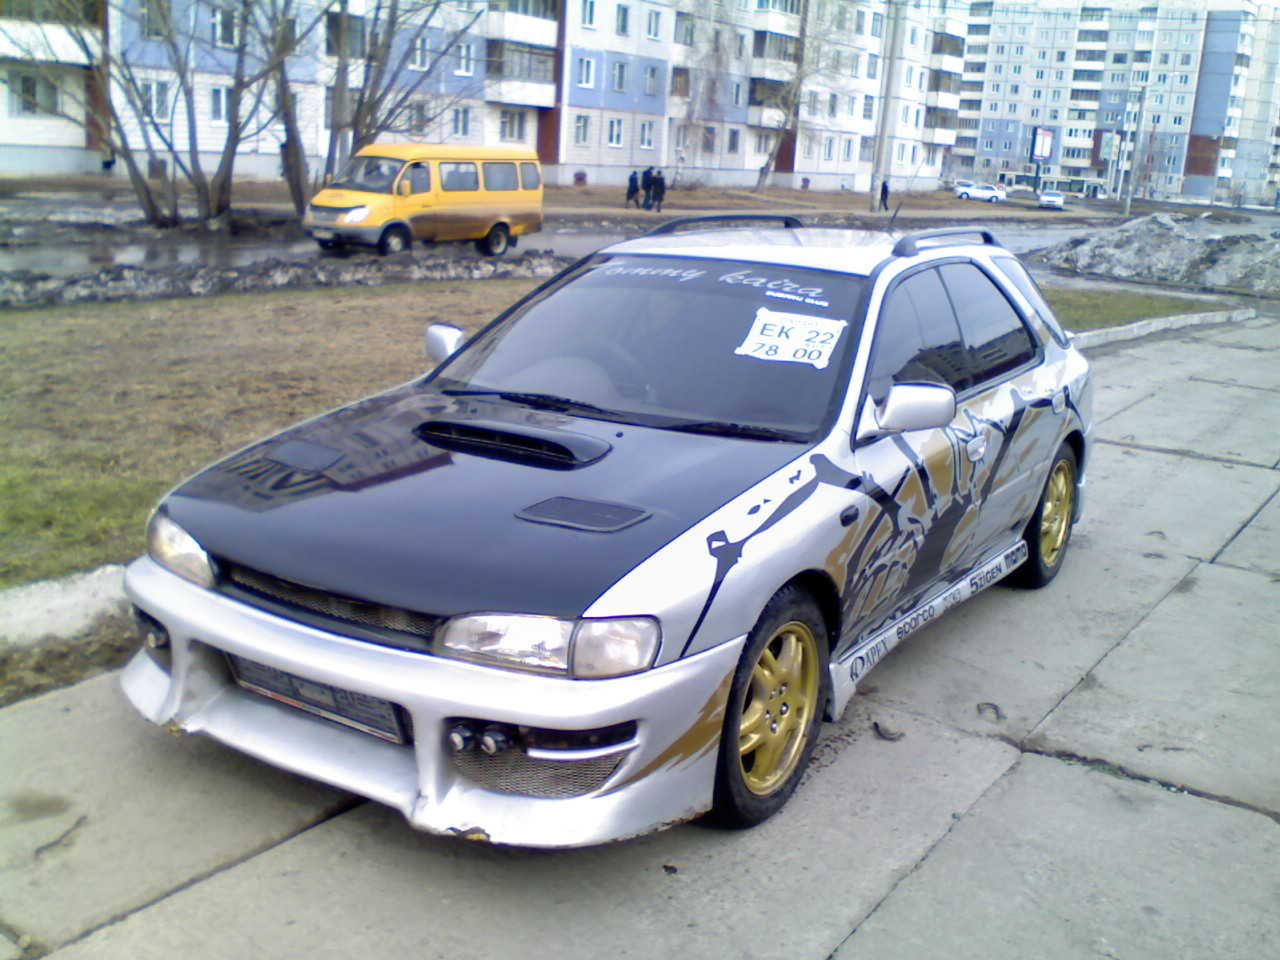 used 1999 subaru impreza wrx photos 2000cc gasoline. Black Bedroom Furniture Sets. Home Design Ideas